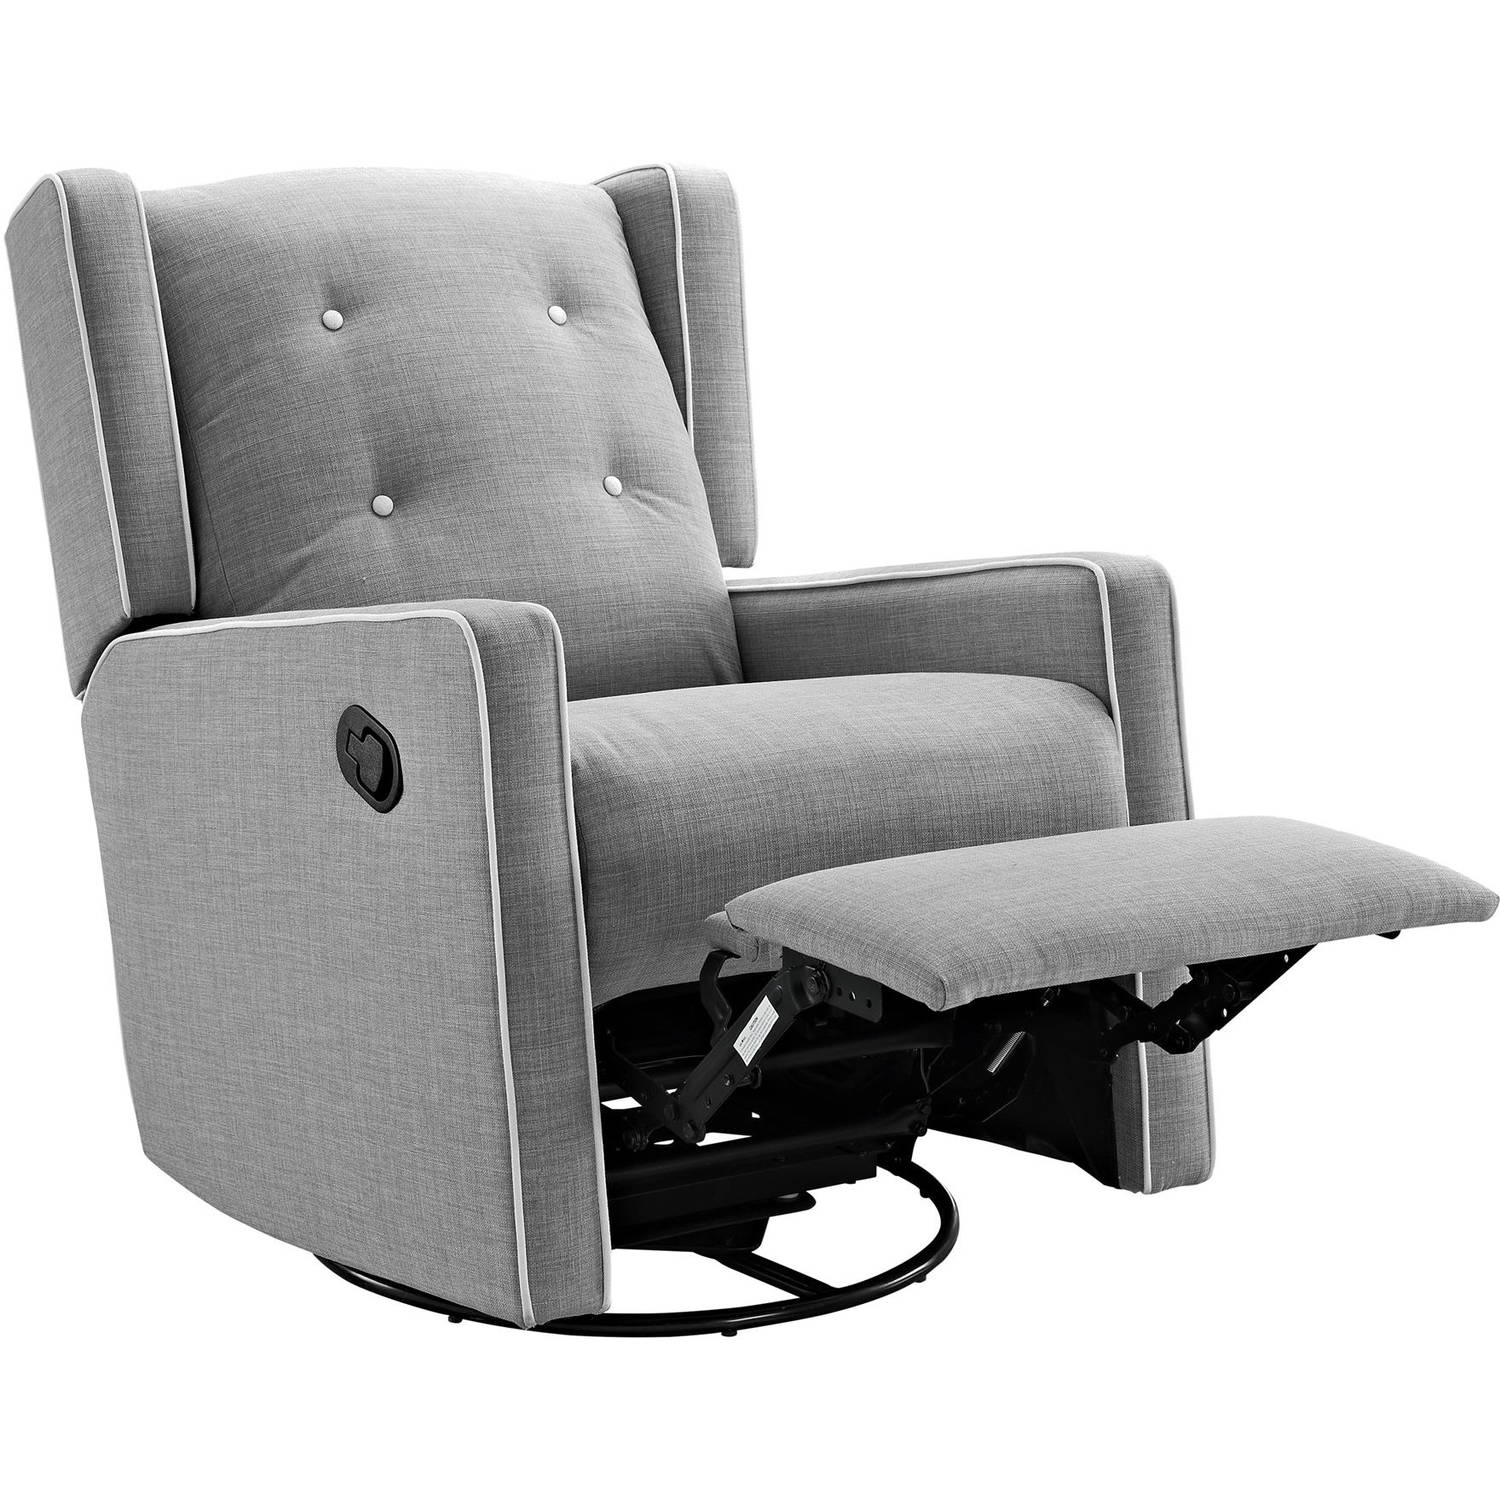 Swivel Rocking Chairs Details About Baby Glider Swivel Rocking Rocker Chair Gliding Recliner Gray Nursery Furniture